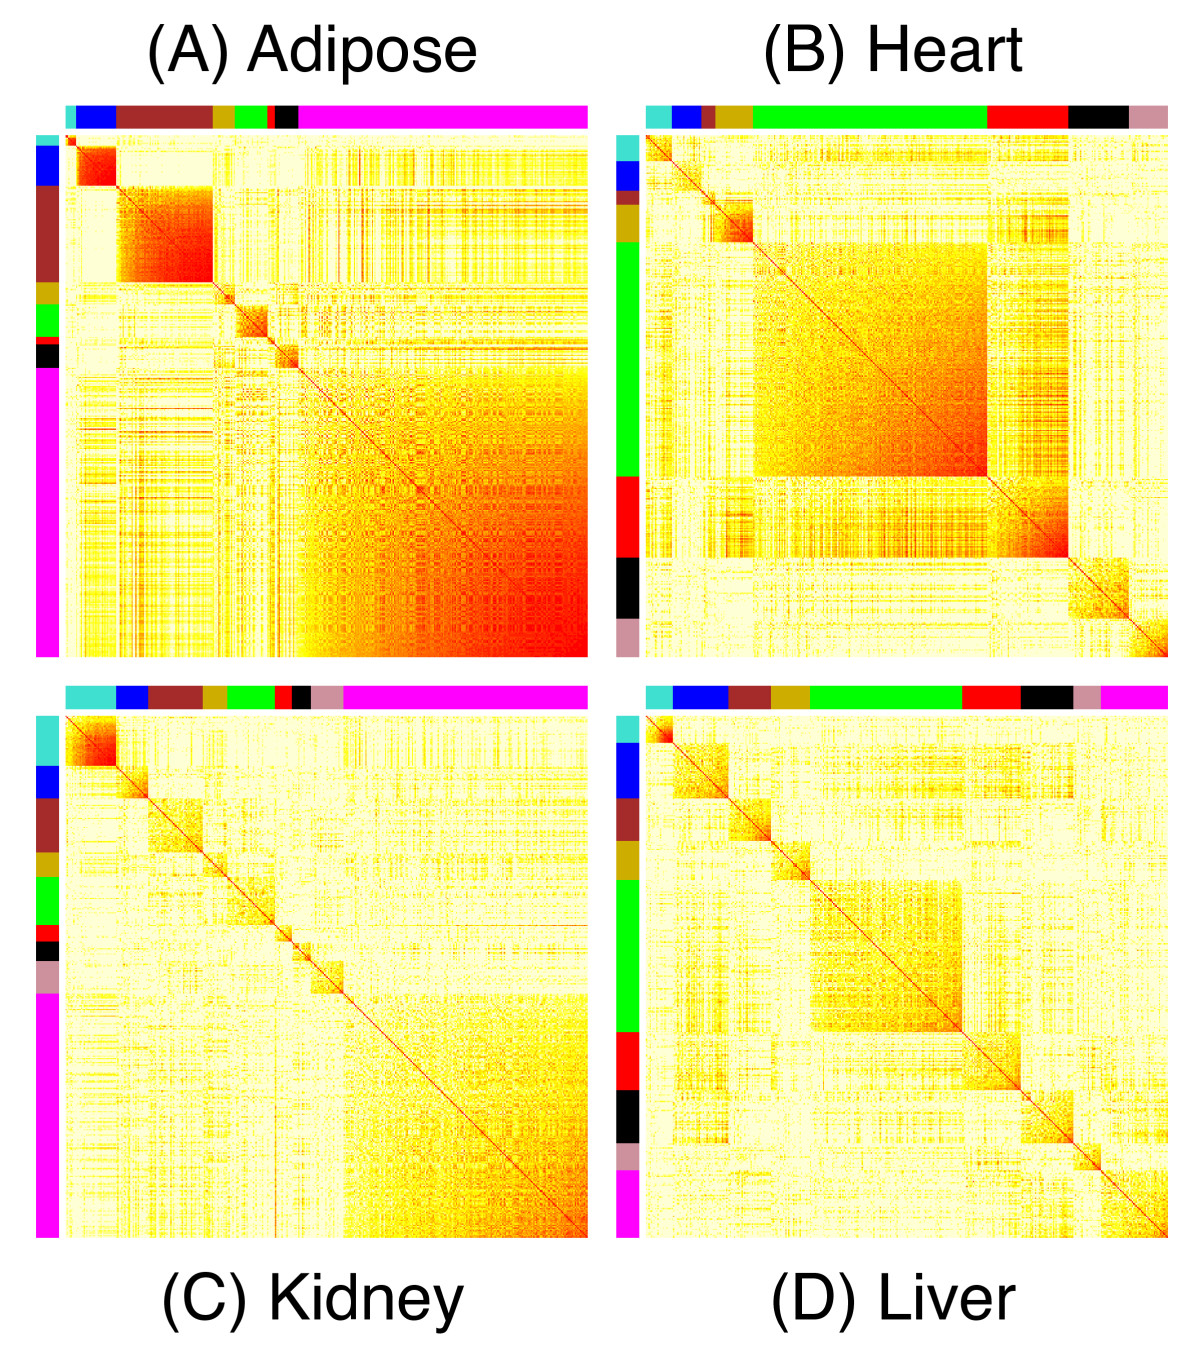 http://static-content.springer.com/image/art%3A10.1186%2F1471-2164-12-167/MediaObjects/12864_2010_3301_Fig3_HTML.jpg